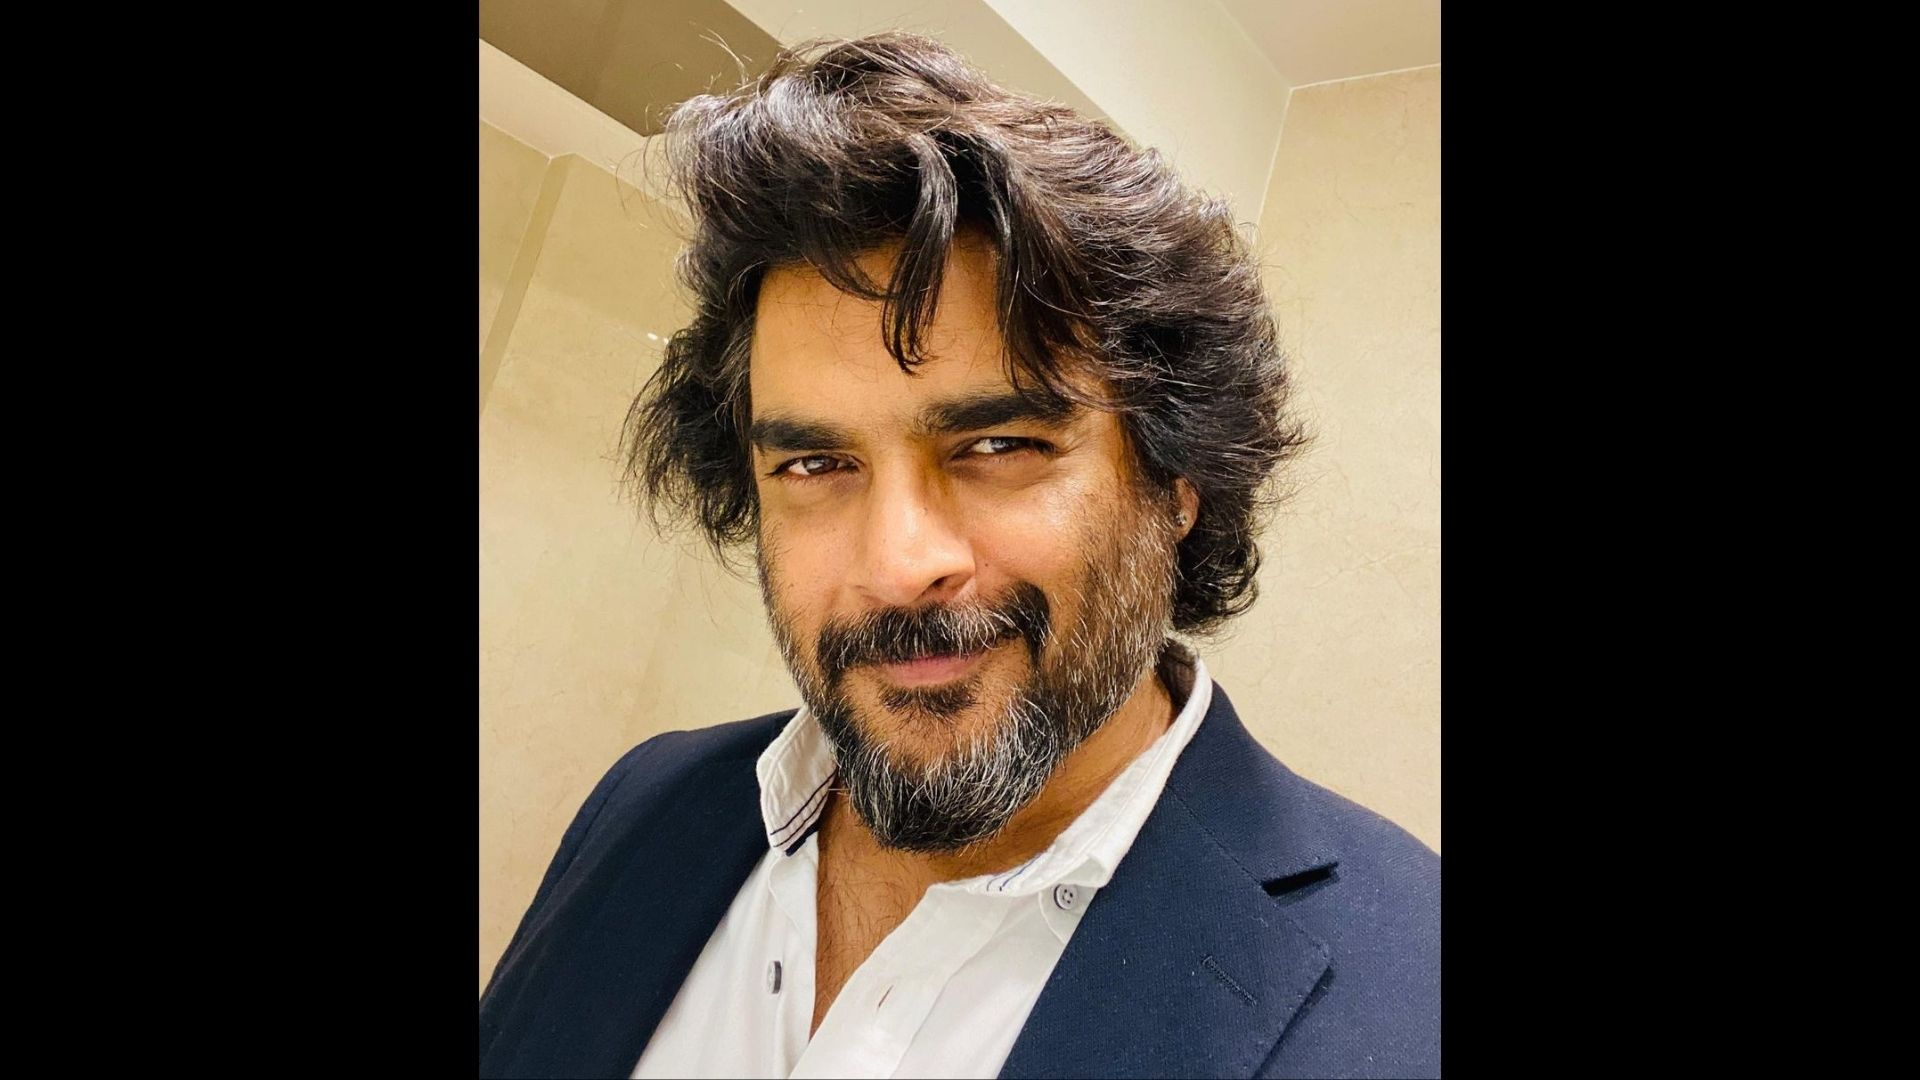 R Madhavan Directorial Rocketry: The Nambi Effect To Release On October 22, 2022; Announces The Director